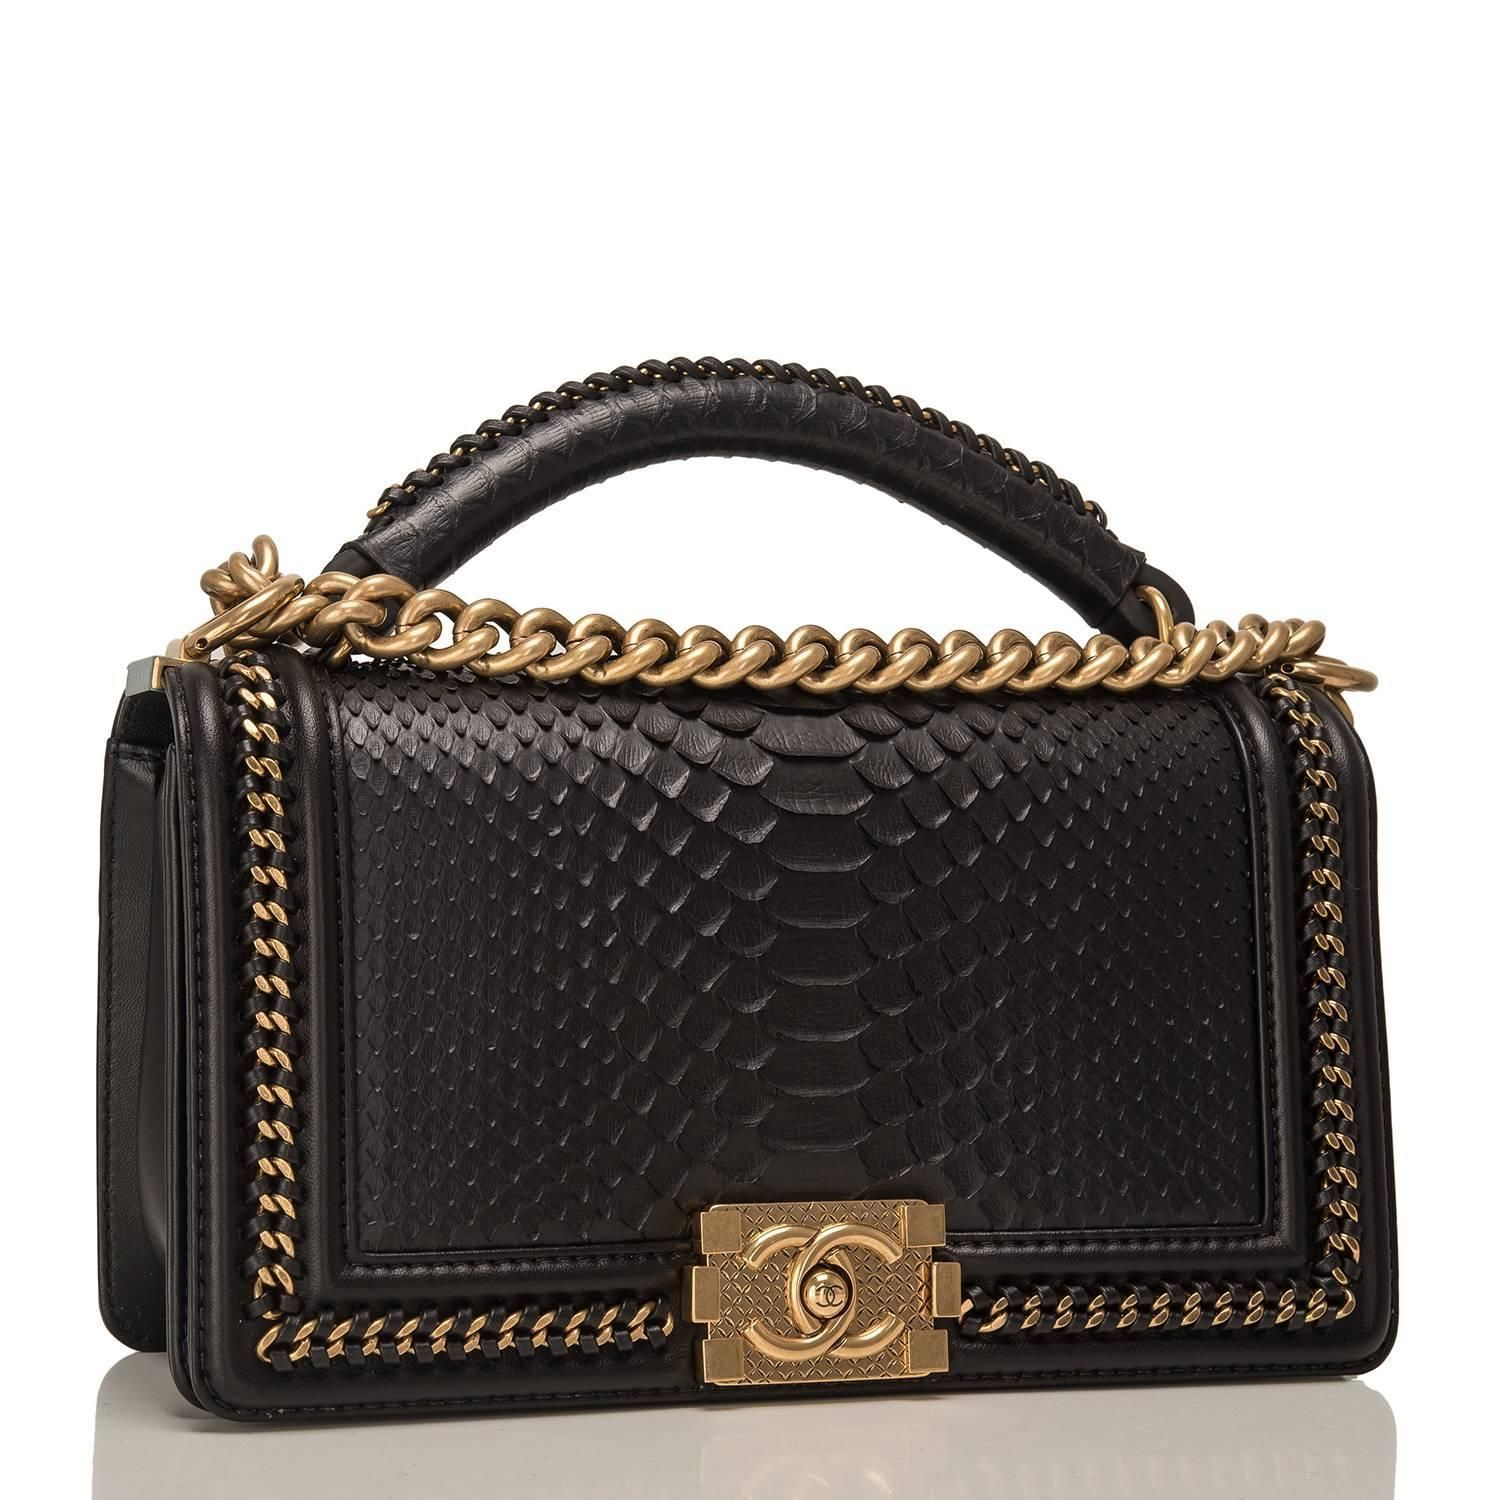 08cd3985d5ae Chanel Black Python Medium Boy Bag with Handle | Sac à main | Bags ...